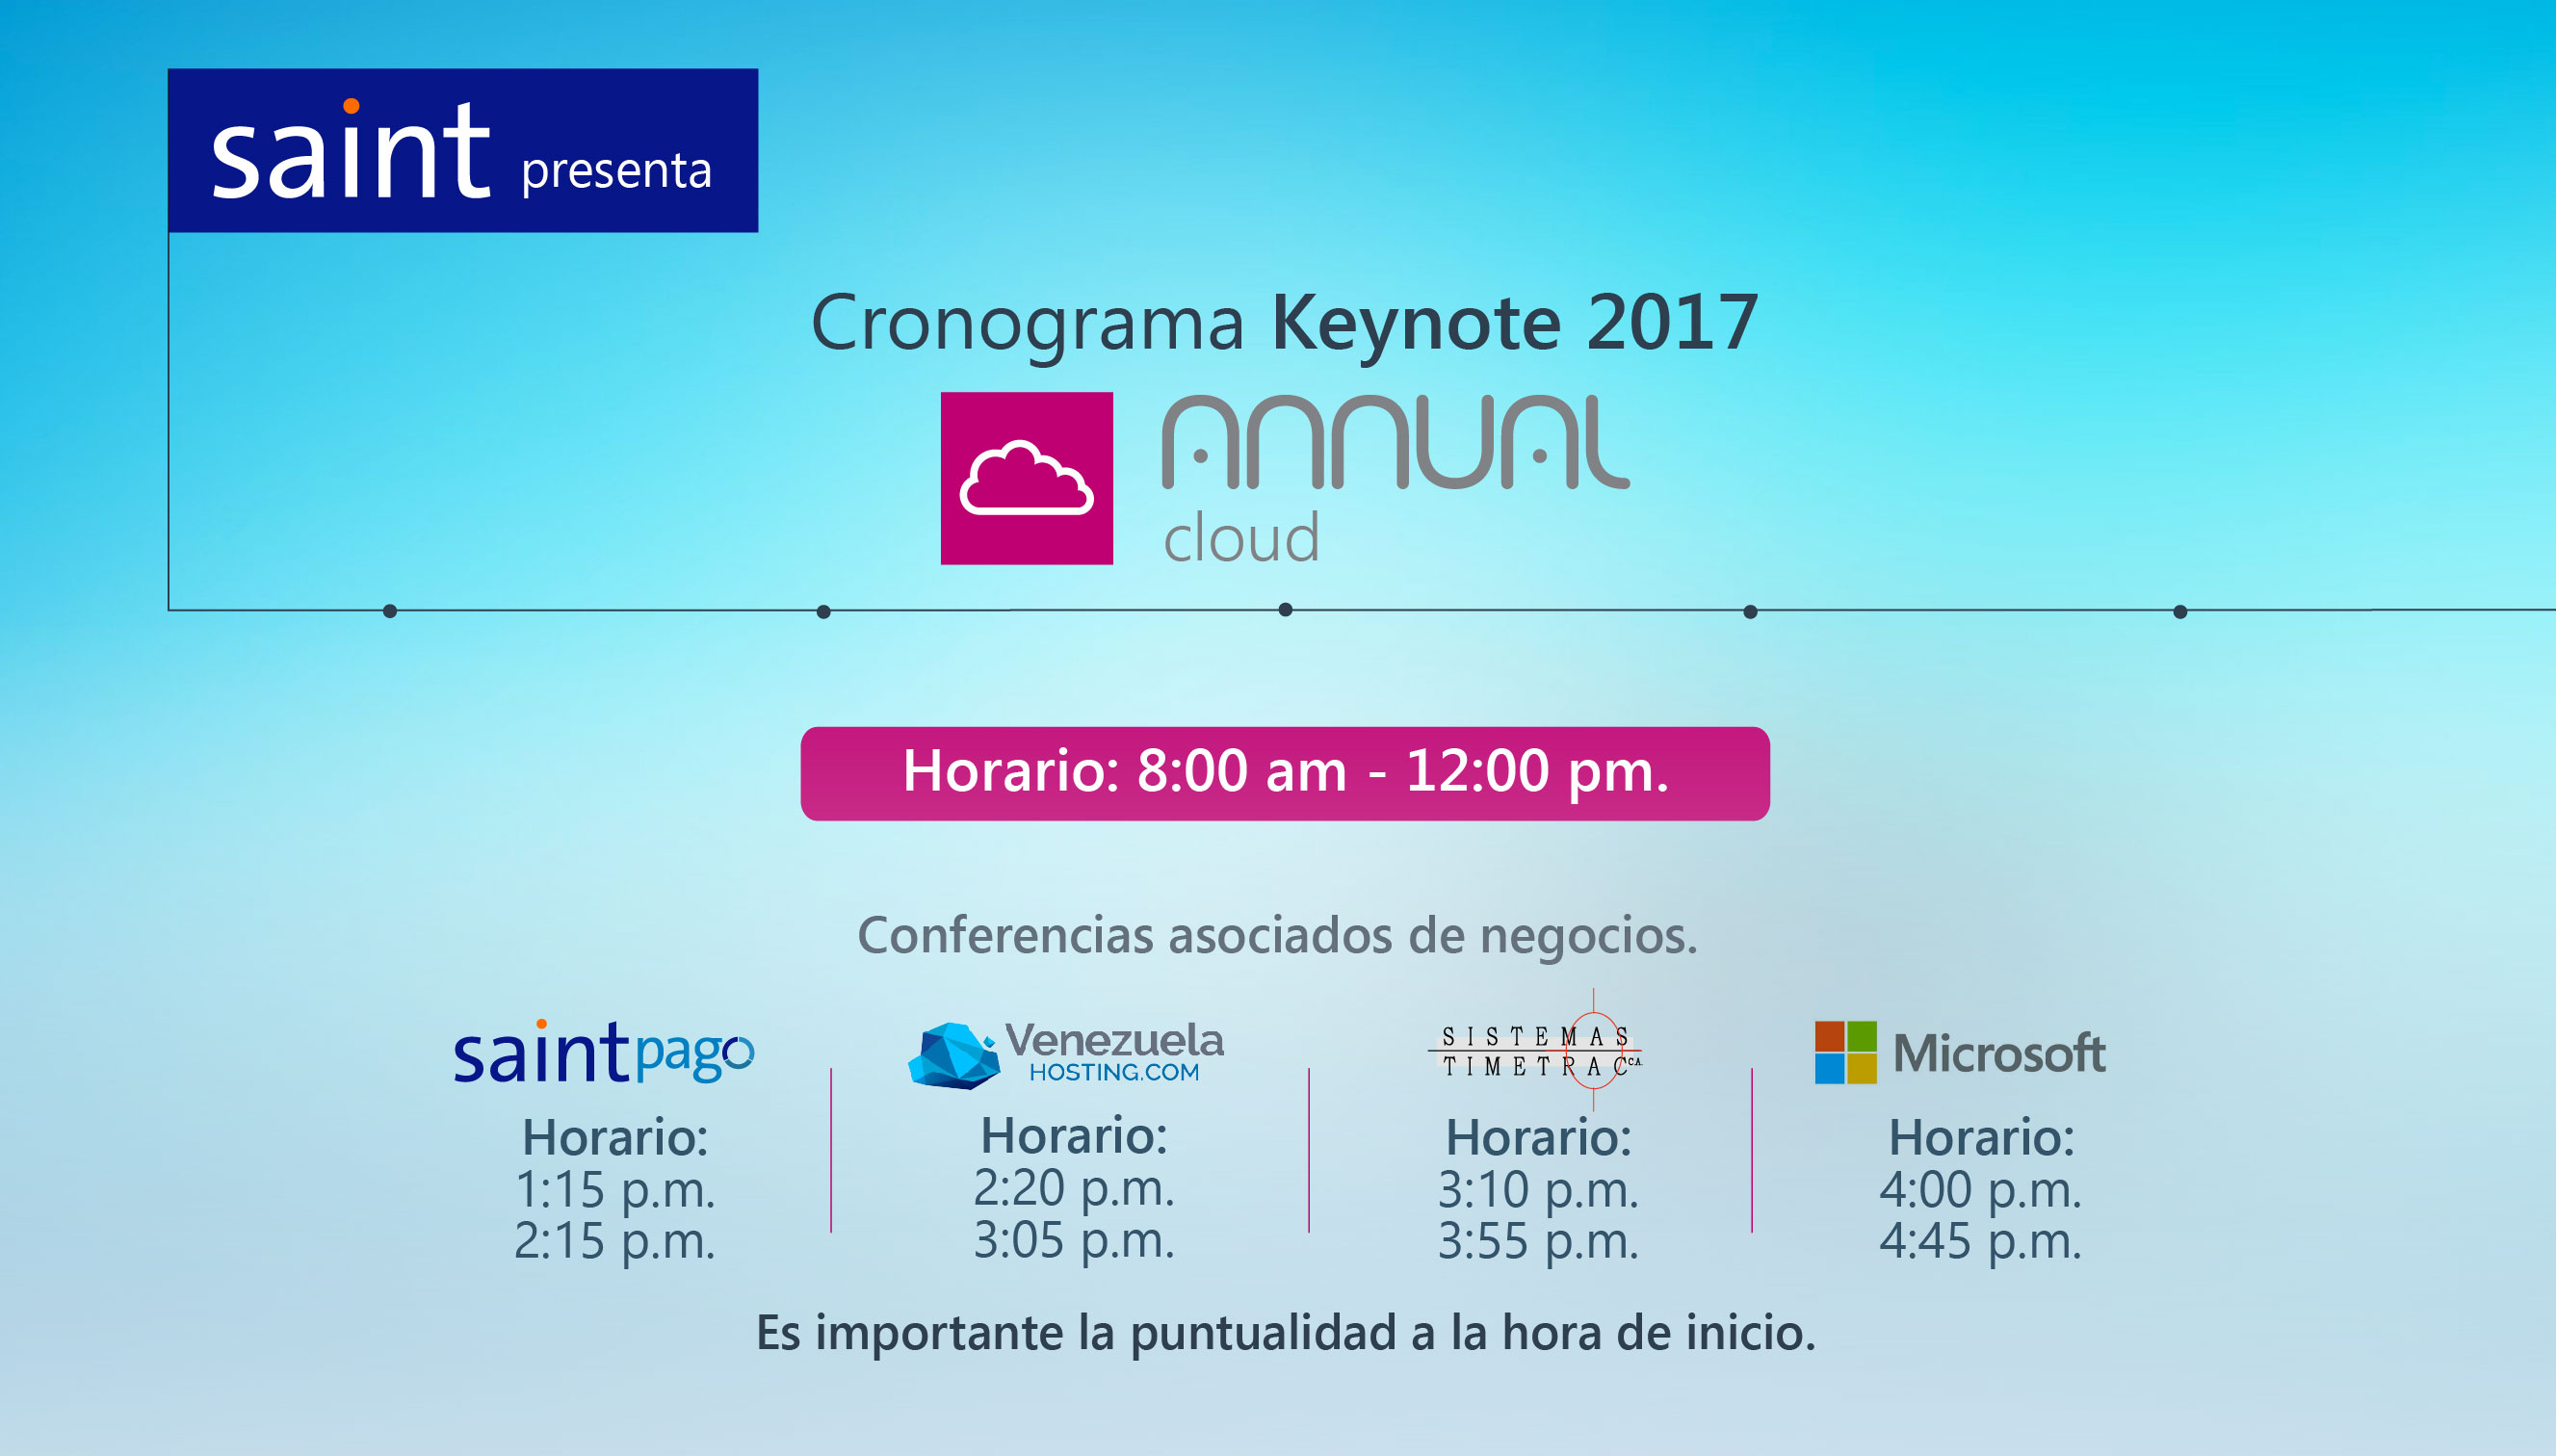 Keynote 2017 Annual Cloud